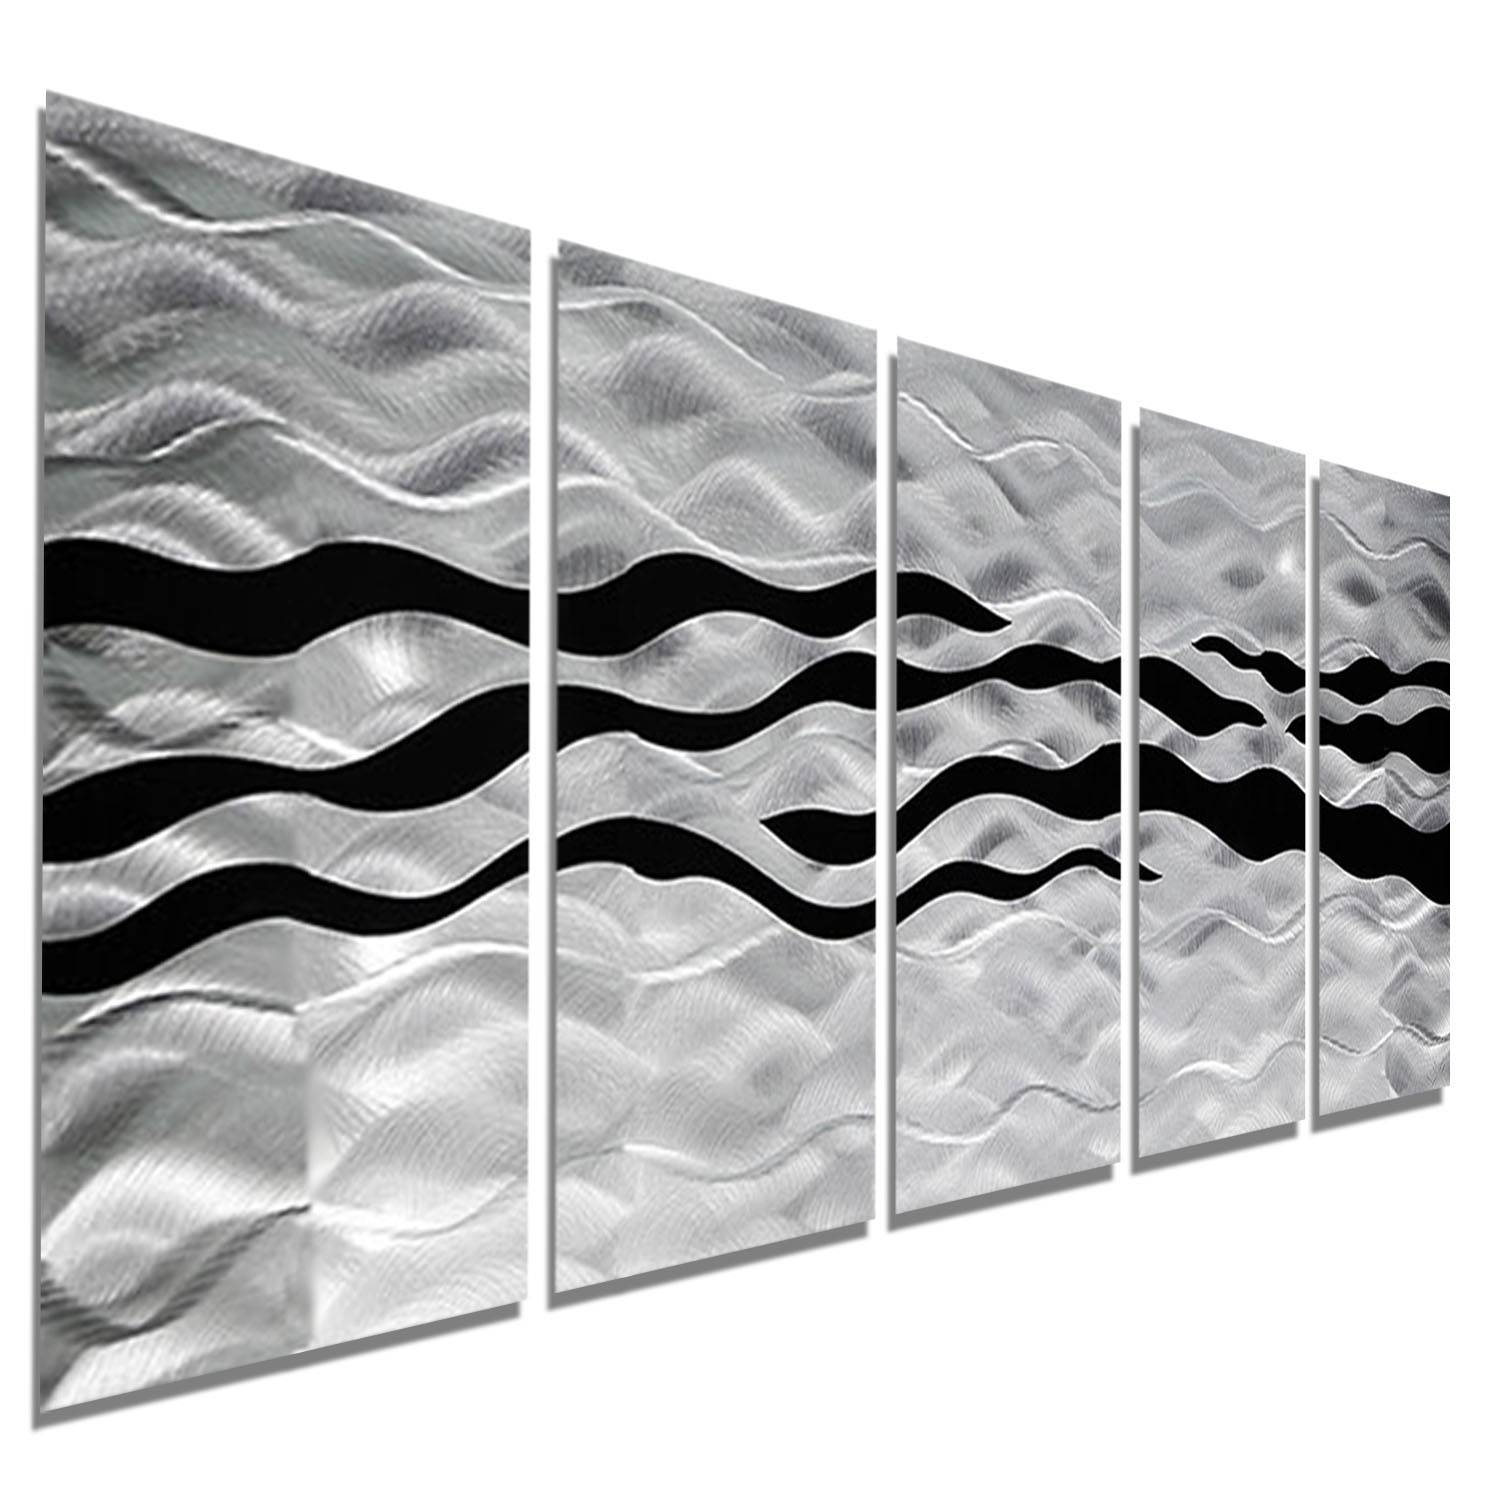 Onyx Oceana – Silver And Black Metal Wall Art – 5 Panel Wall Décor Inside Current Black And Silver Metal Wall Art (Gallery 11 of 20)